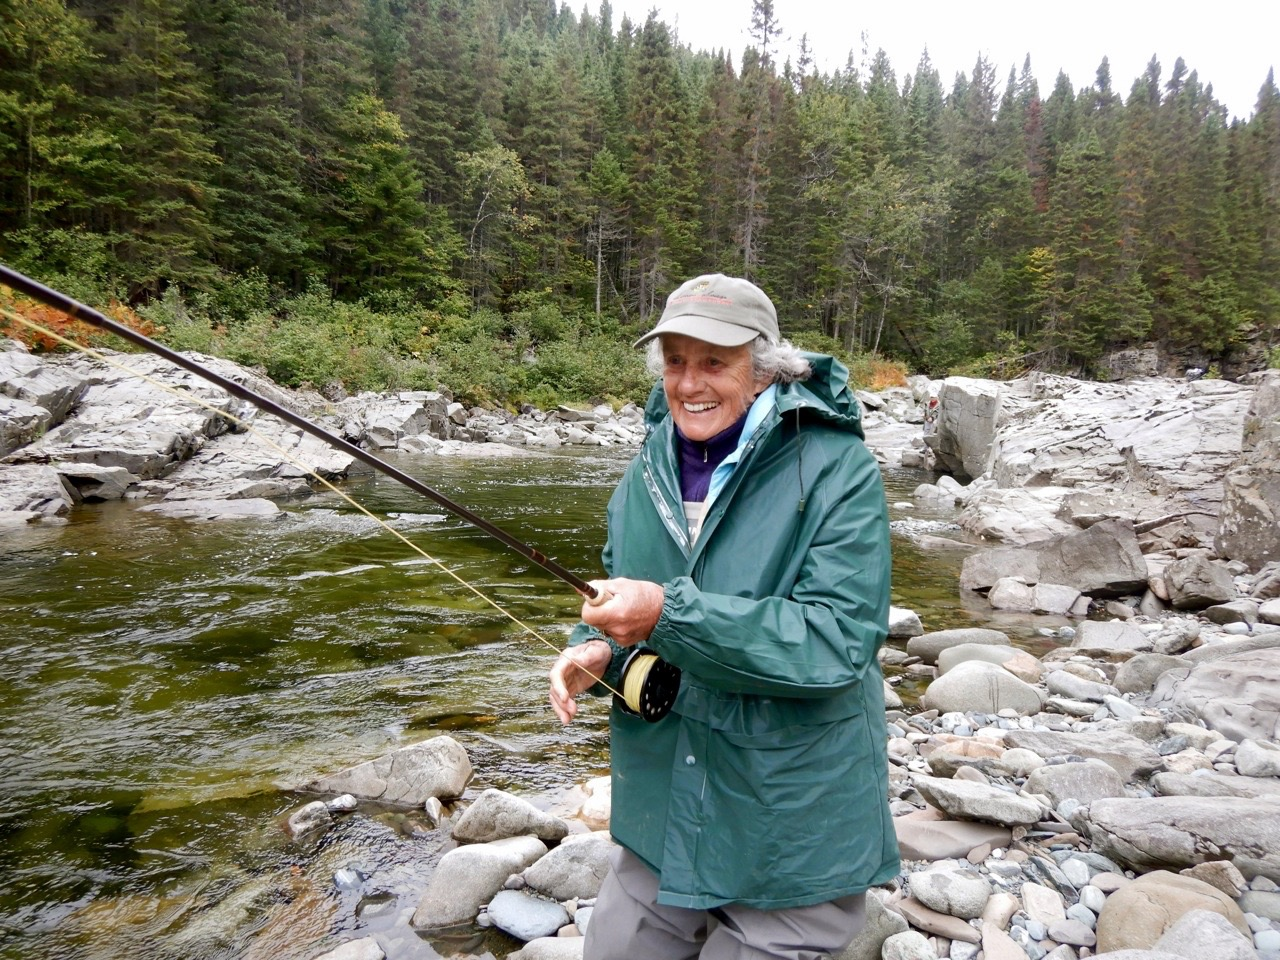 Barbara Griffin hooked up to her first Atlantic salmon, what a smile!